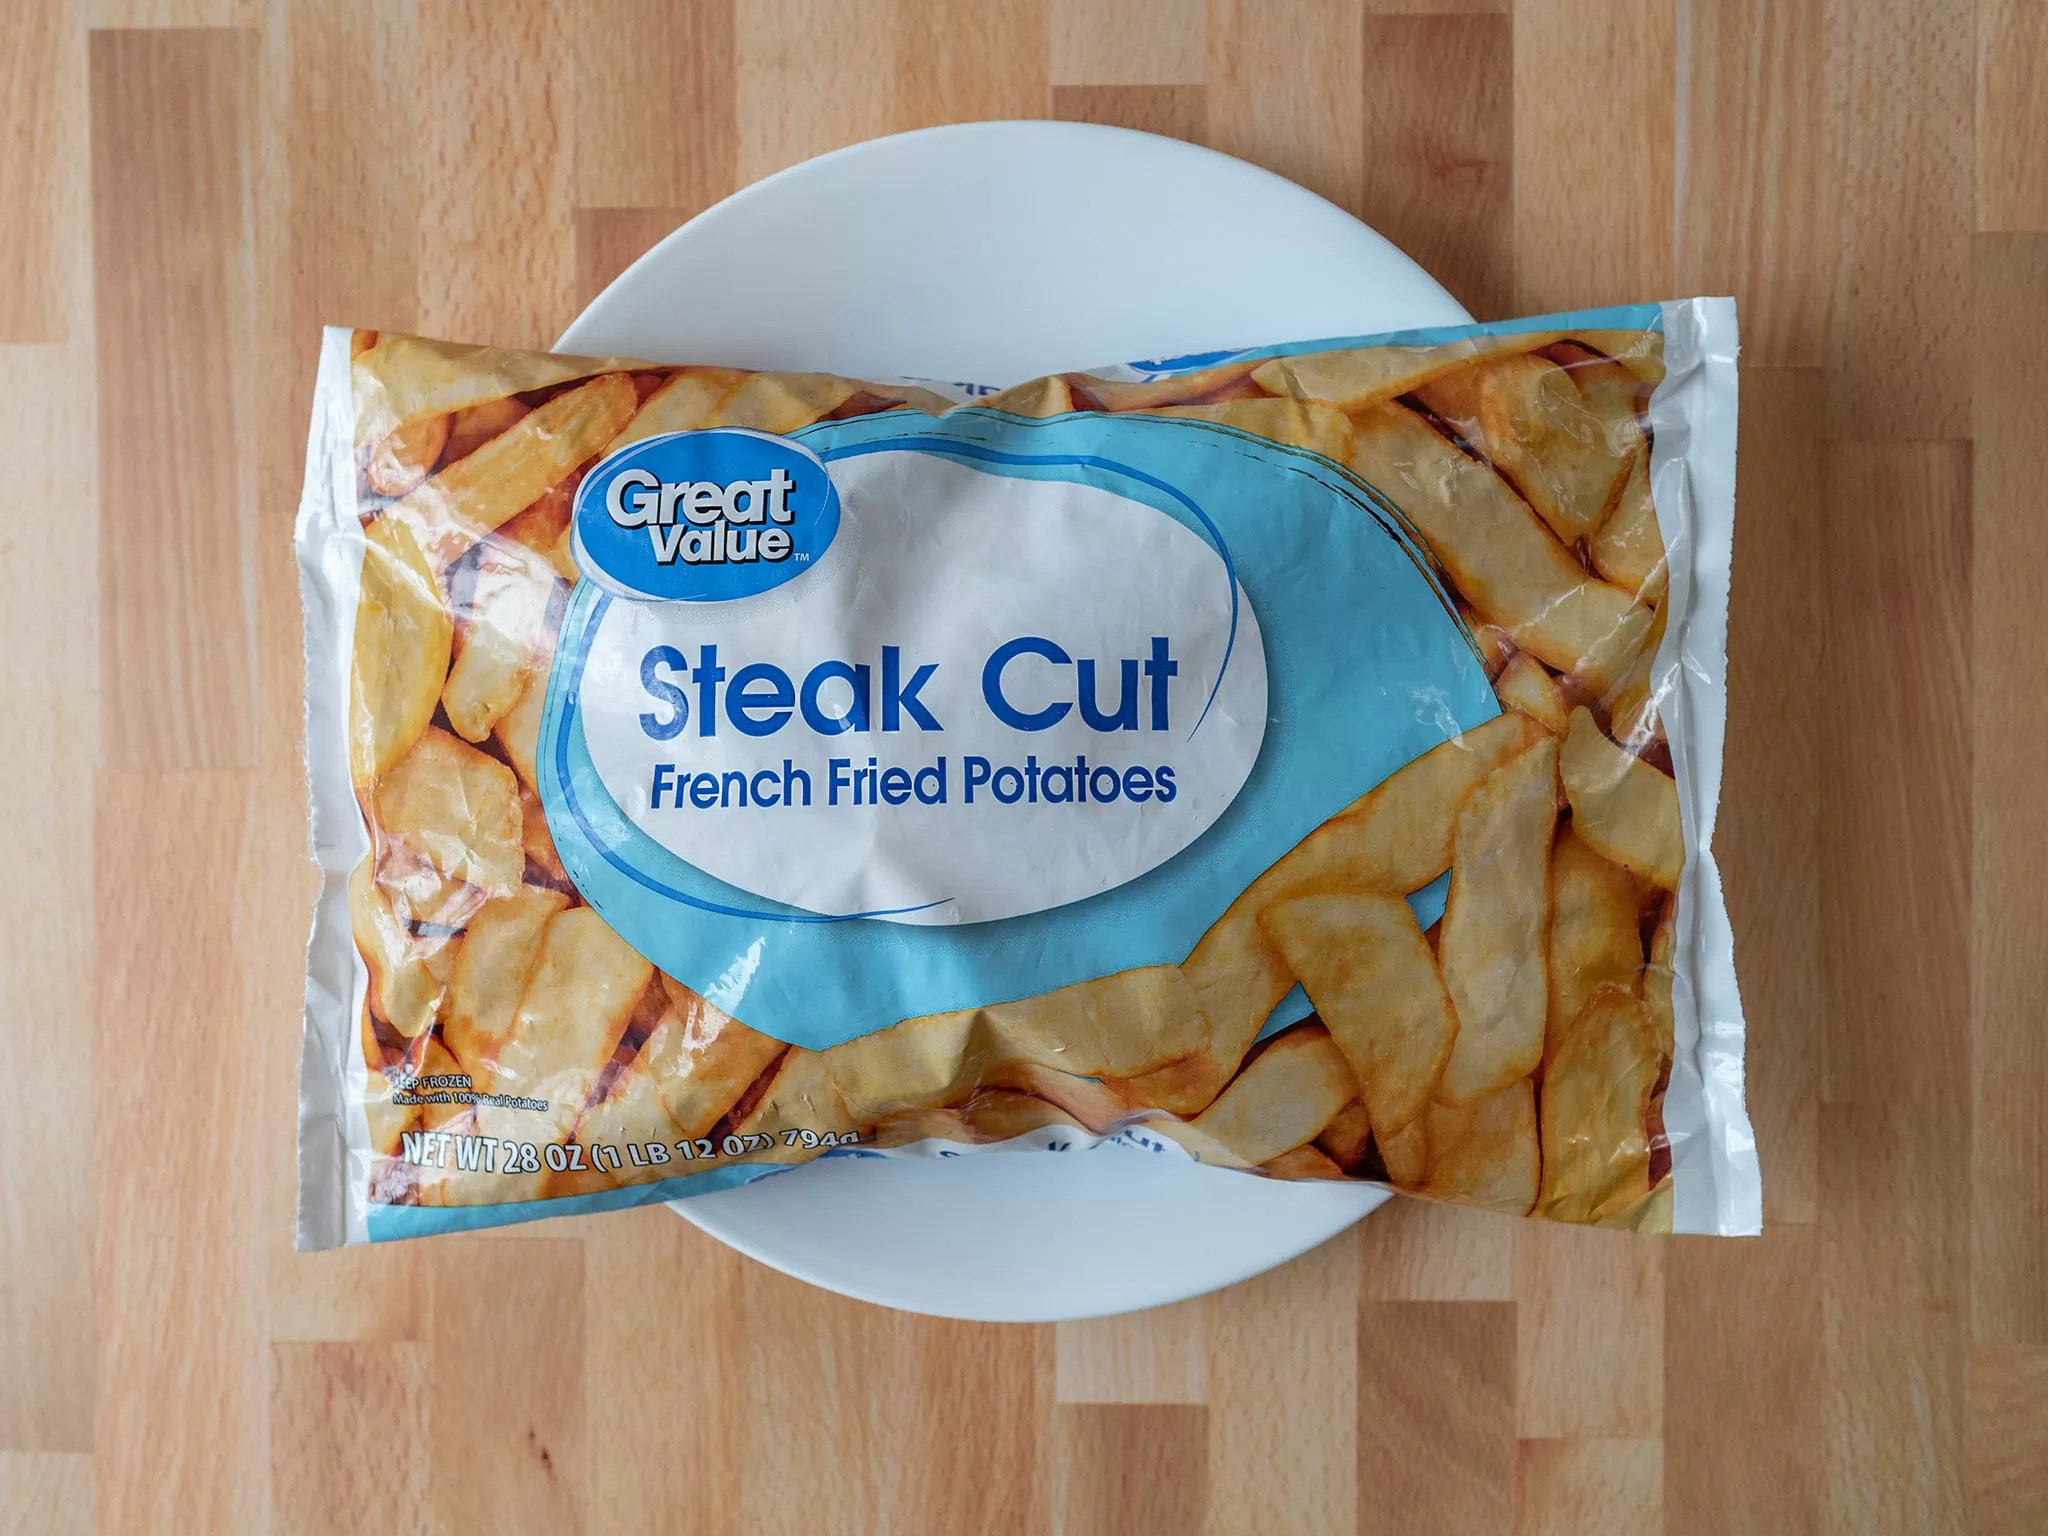 Great Value Steak Cut French Fried Potatoes